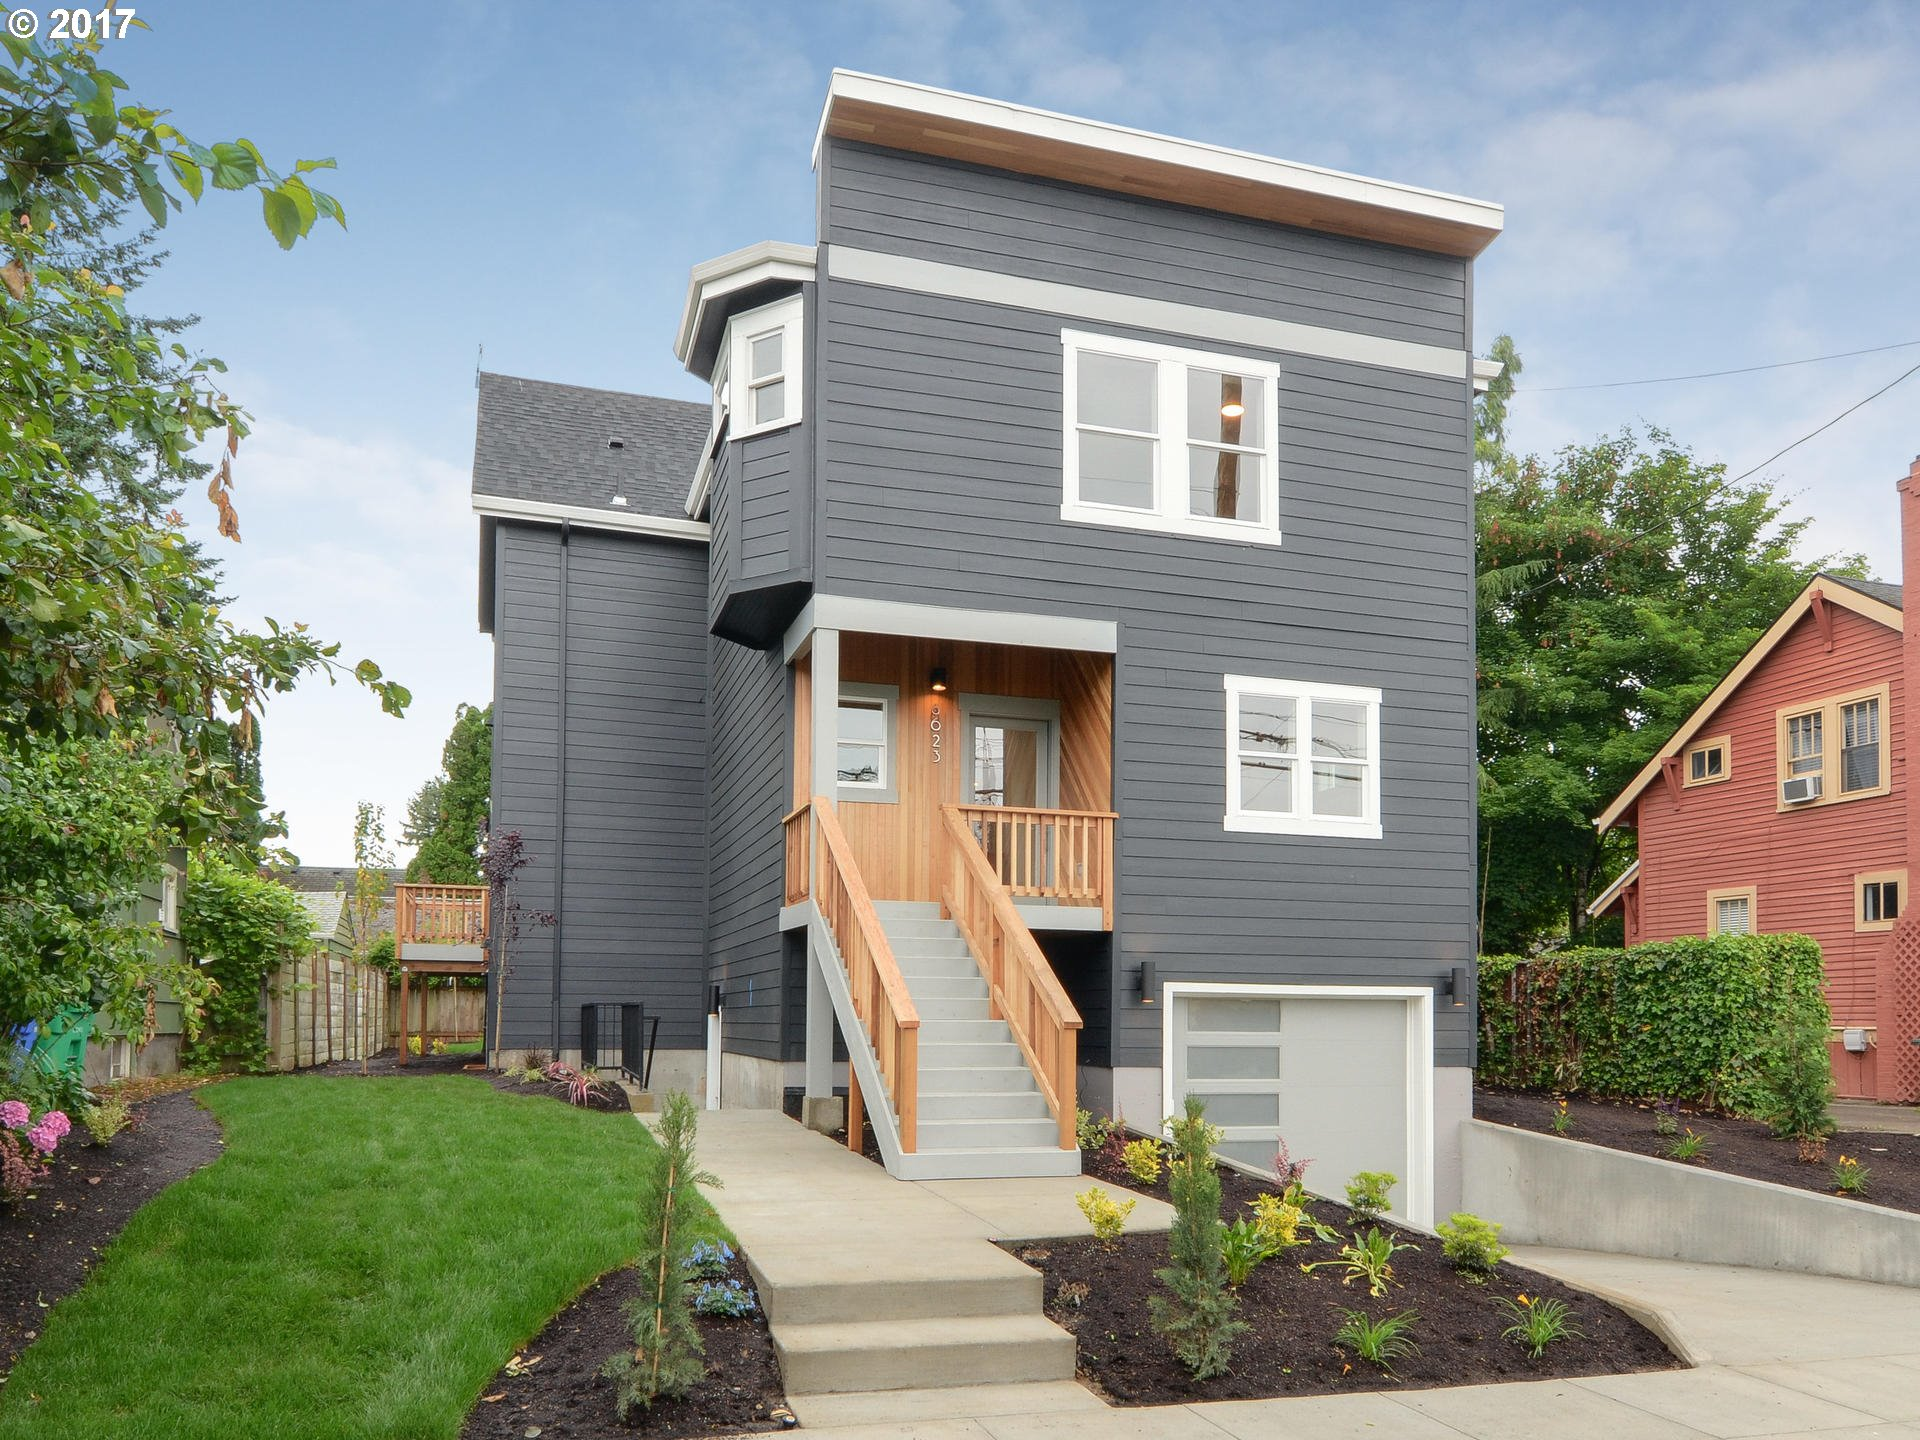 8623 Se 11th Ave, Portland, OR 97202